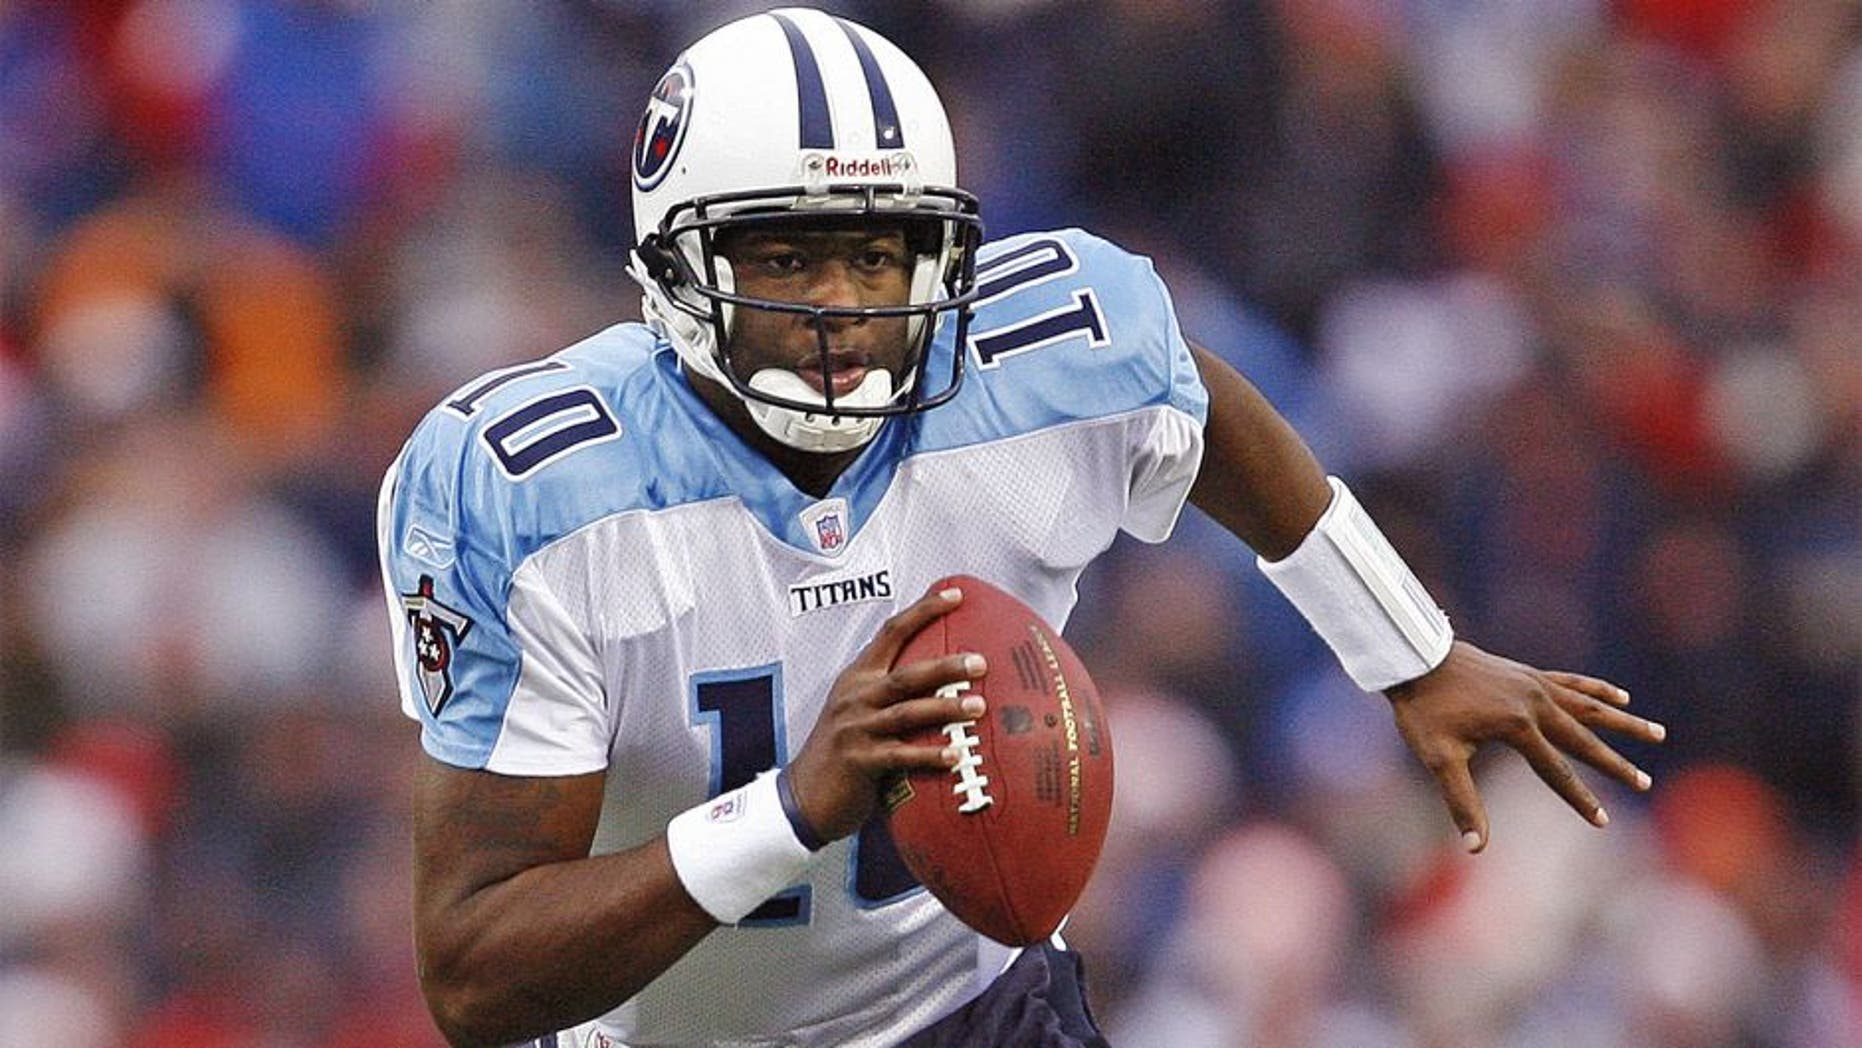 Titans' Vince Young during a game between the Buffalo Bills and the Tennessee Titans, Orchard Park, New York, Sunday, December 24, 2006. The Titans won 30-29. (Photo by Jim Rogash/Getty Images)